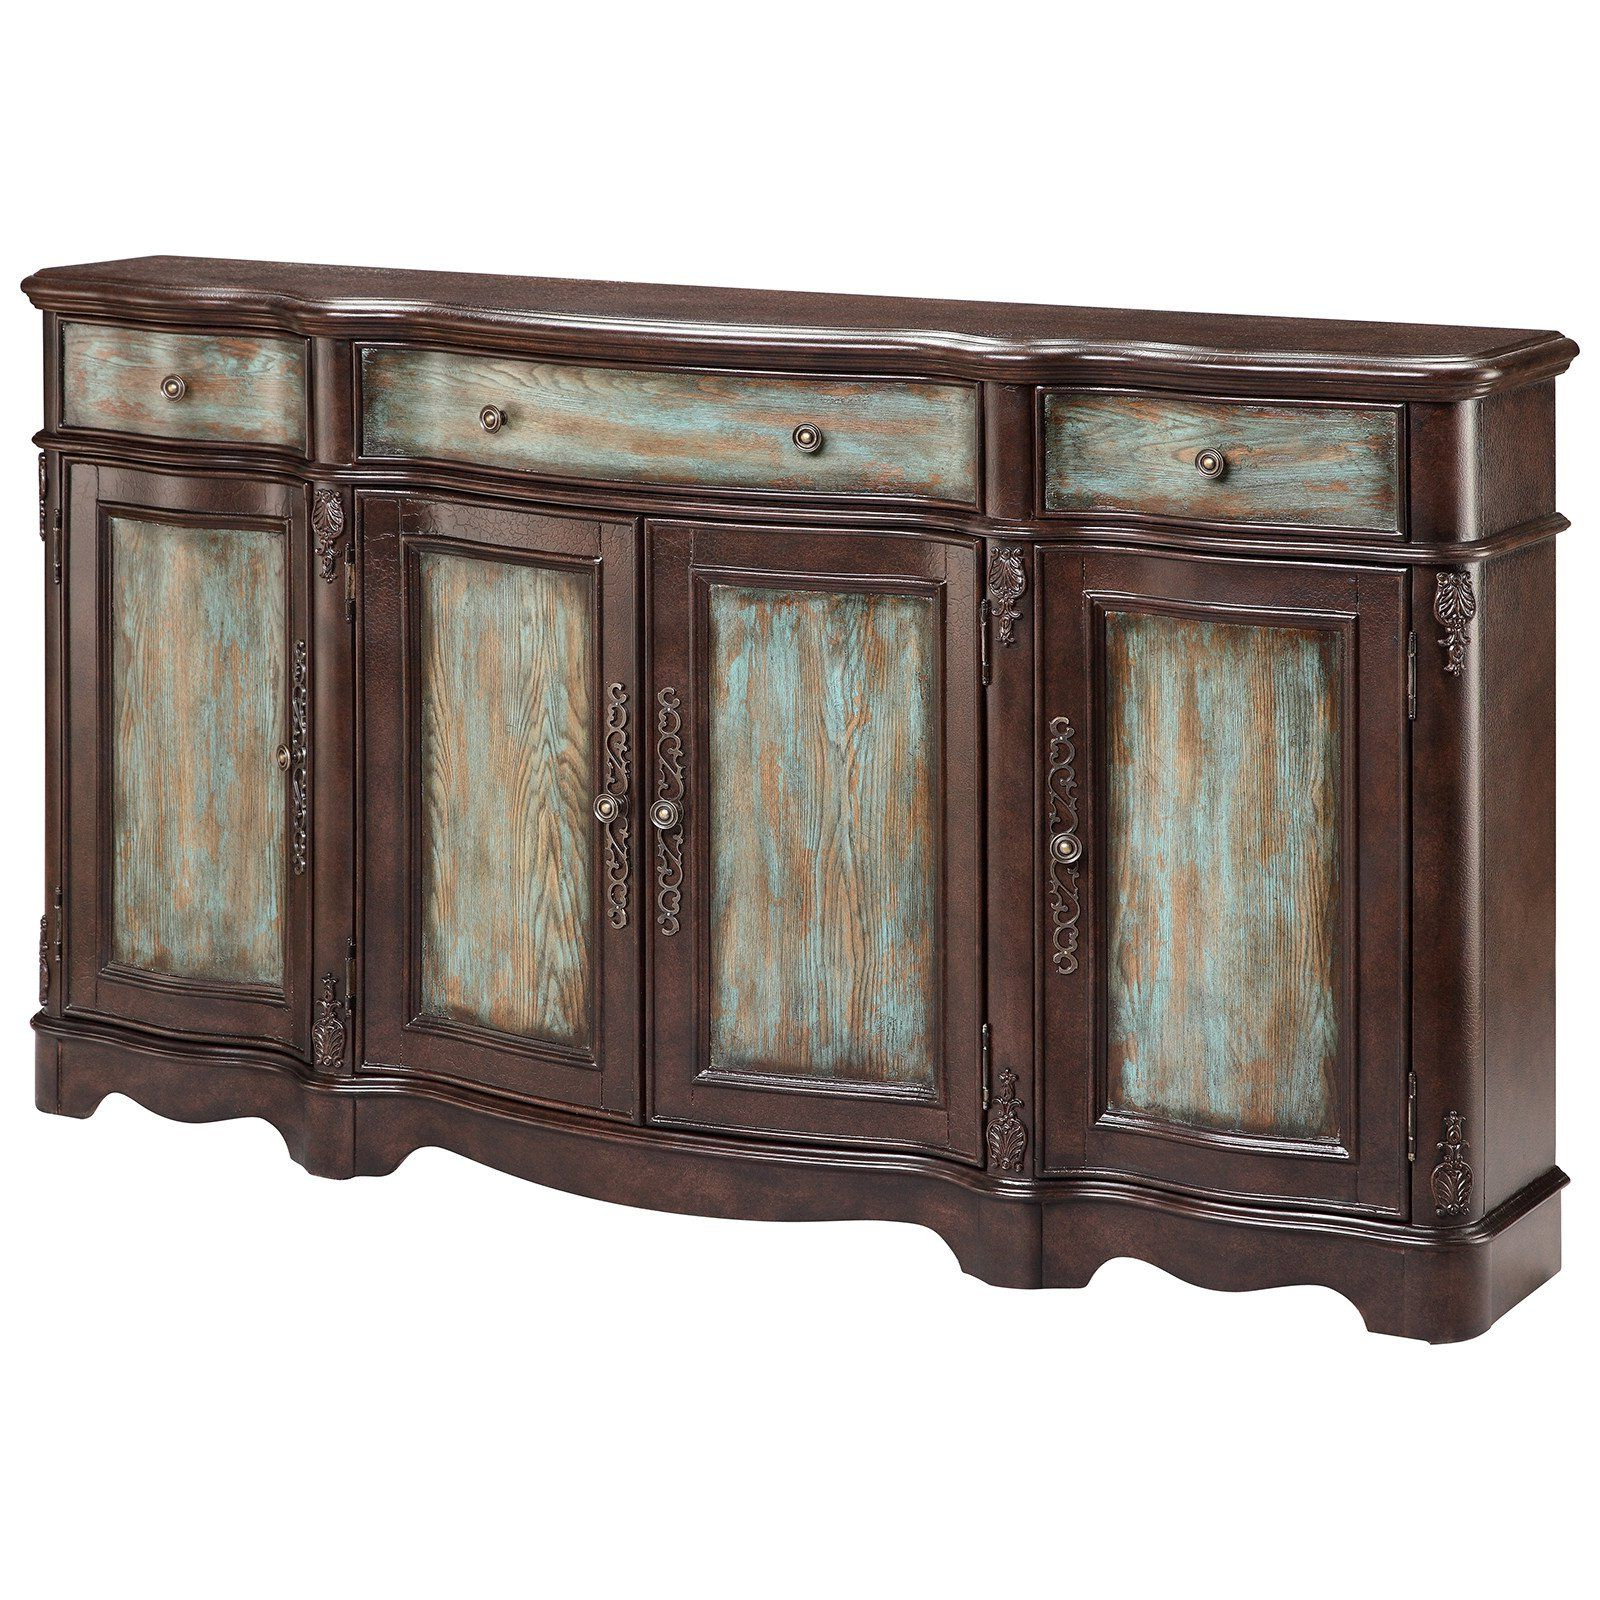 Hewlett Sideboards Within Well Known Lyle 4 Door Sideboard In Brown And Blue (View 11 of 20)